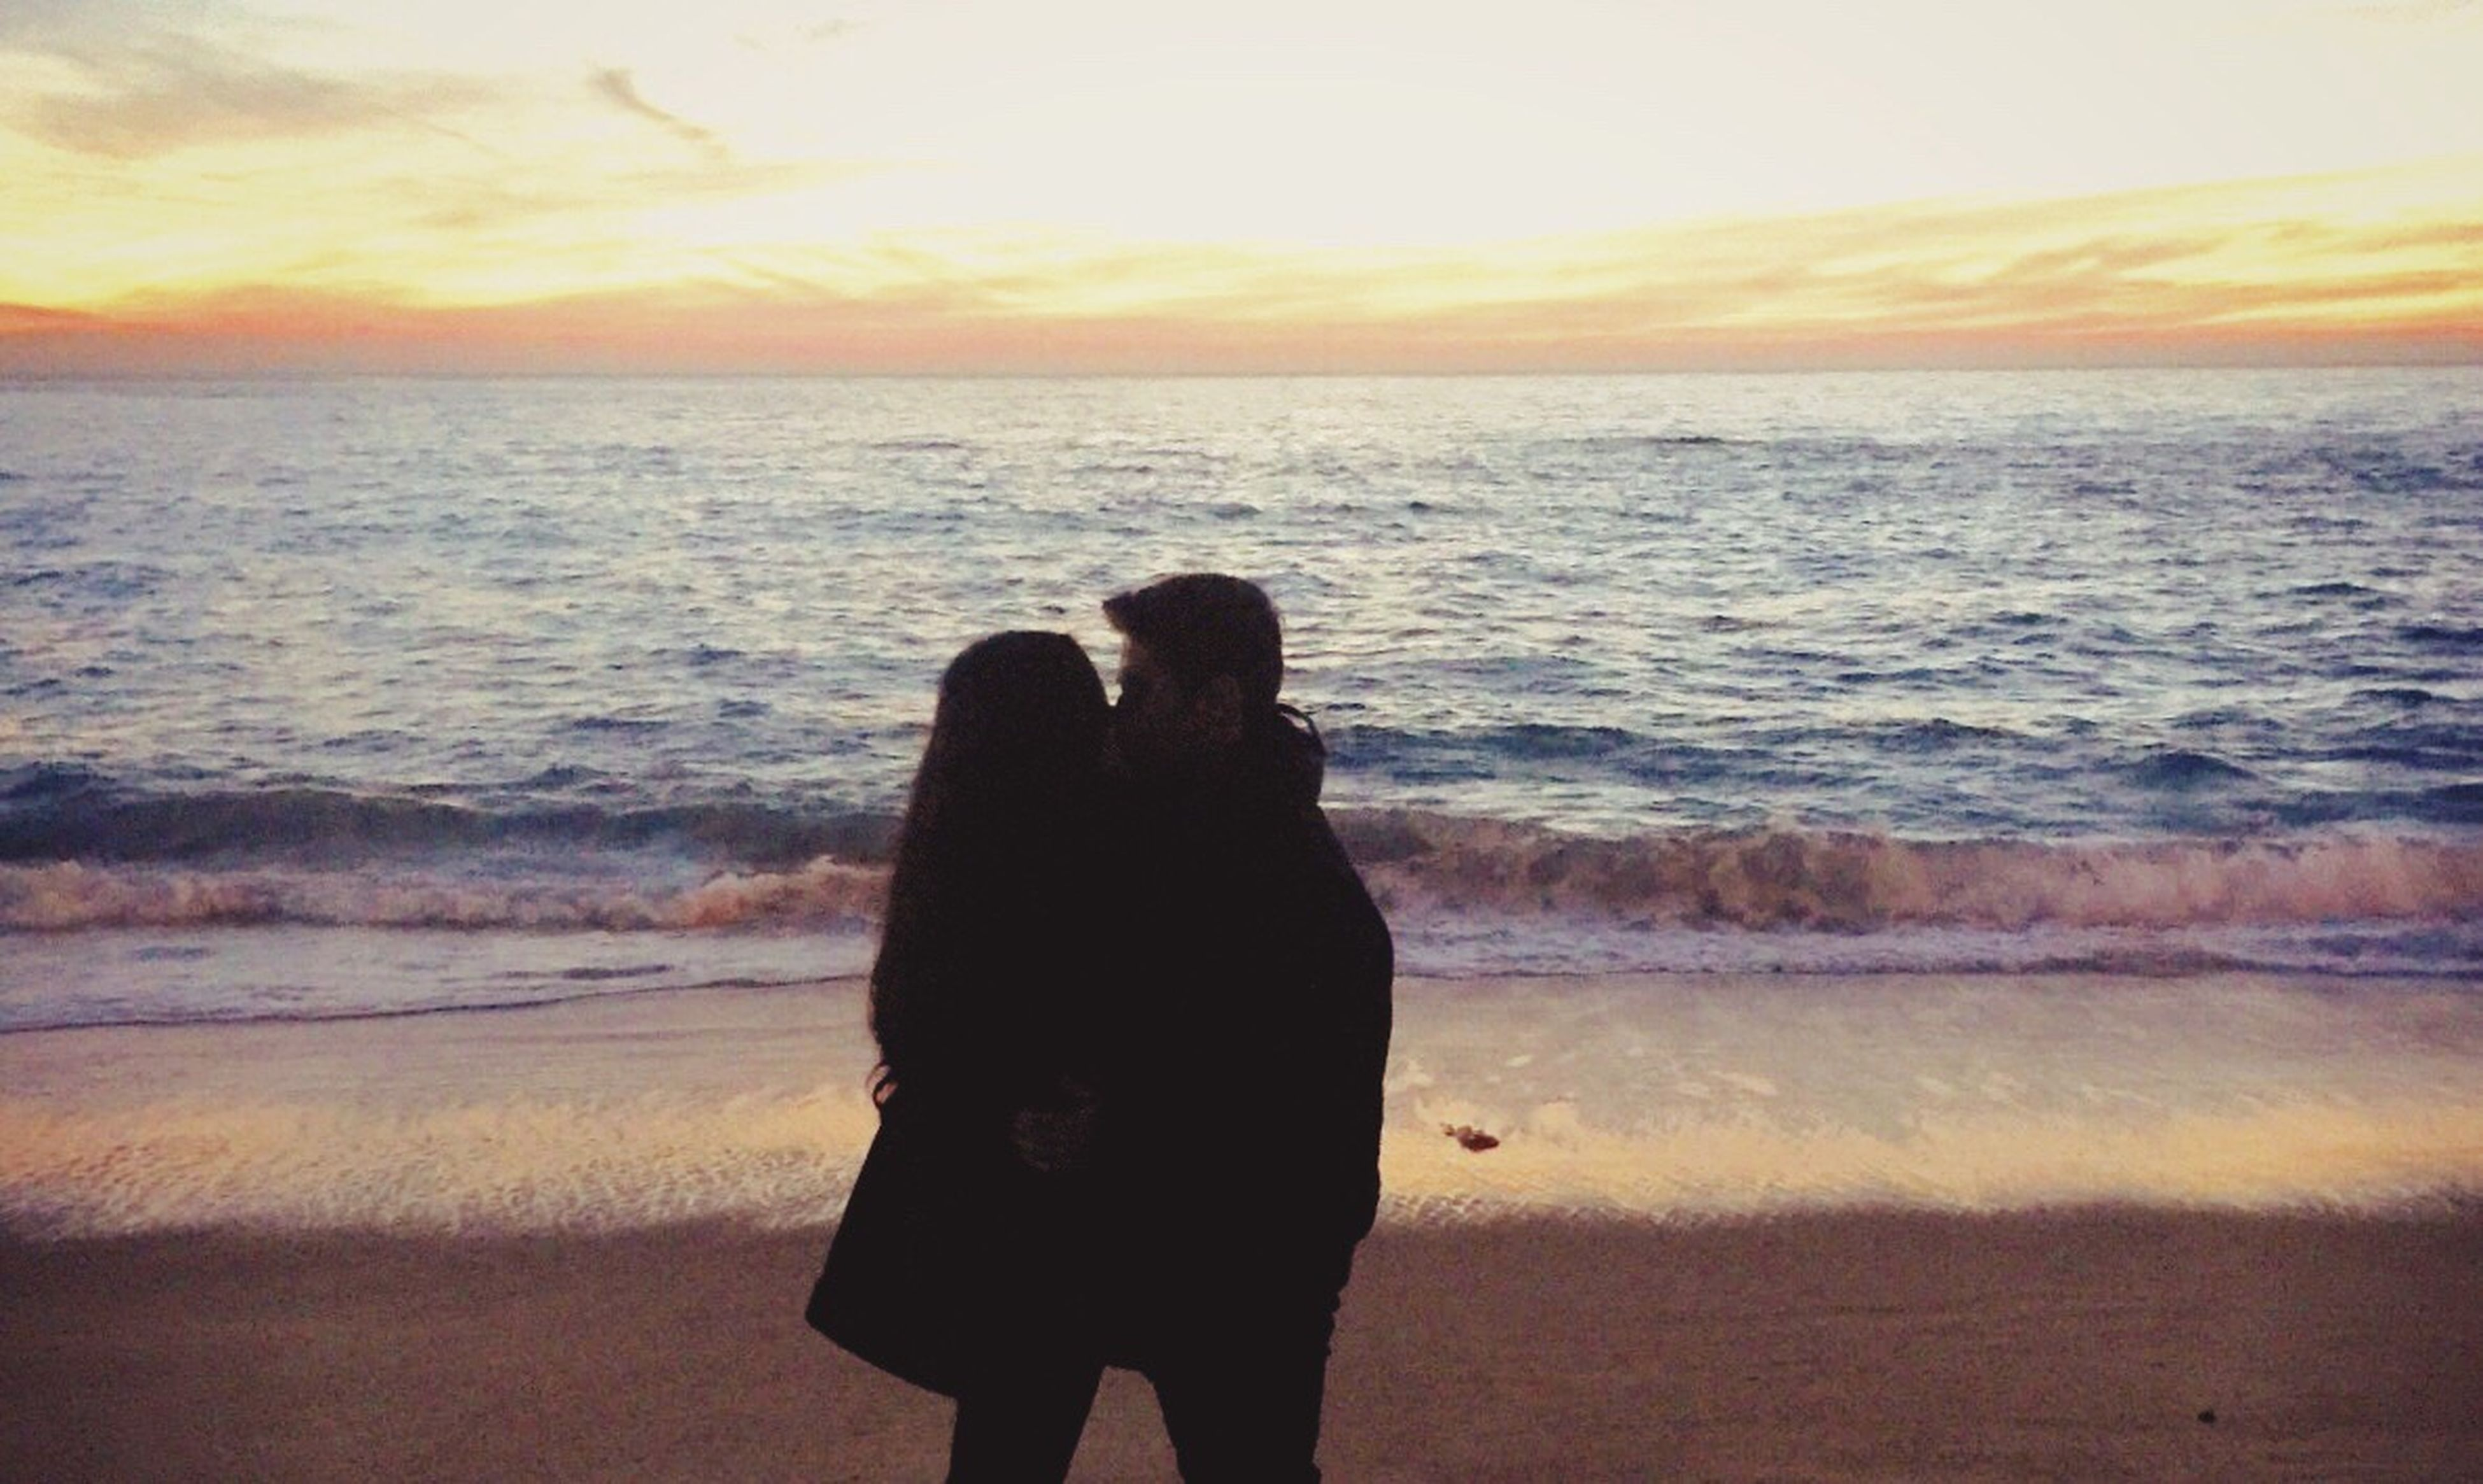 sea, two people, togetherness, sunset, real people, love, horizon over water, leisure activity, beach, nature, scenics, water, standing, sky, bonding, beauty in nature, lifestyles, embracing, outdoors, women, men, friendship, wave, day, people